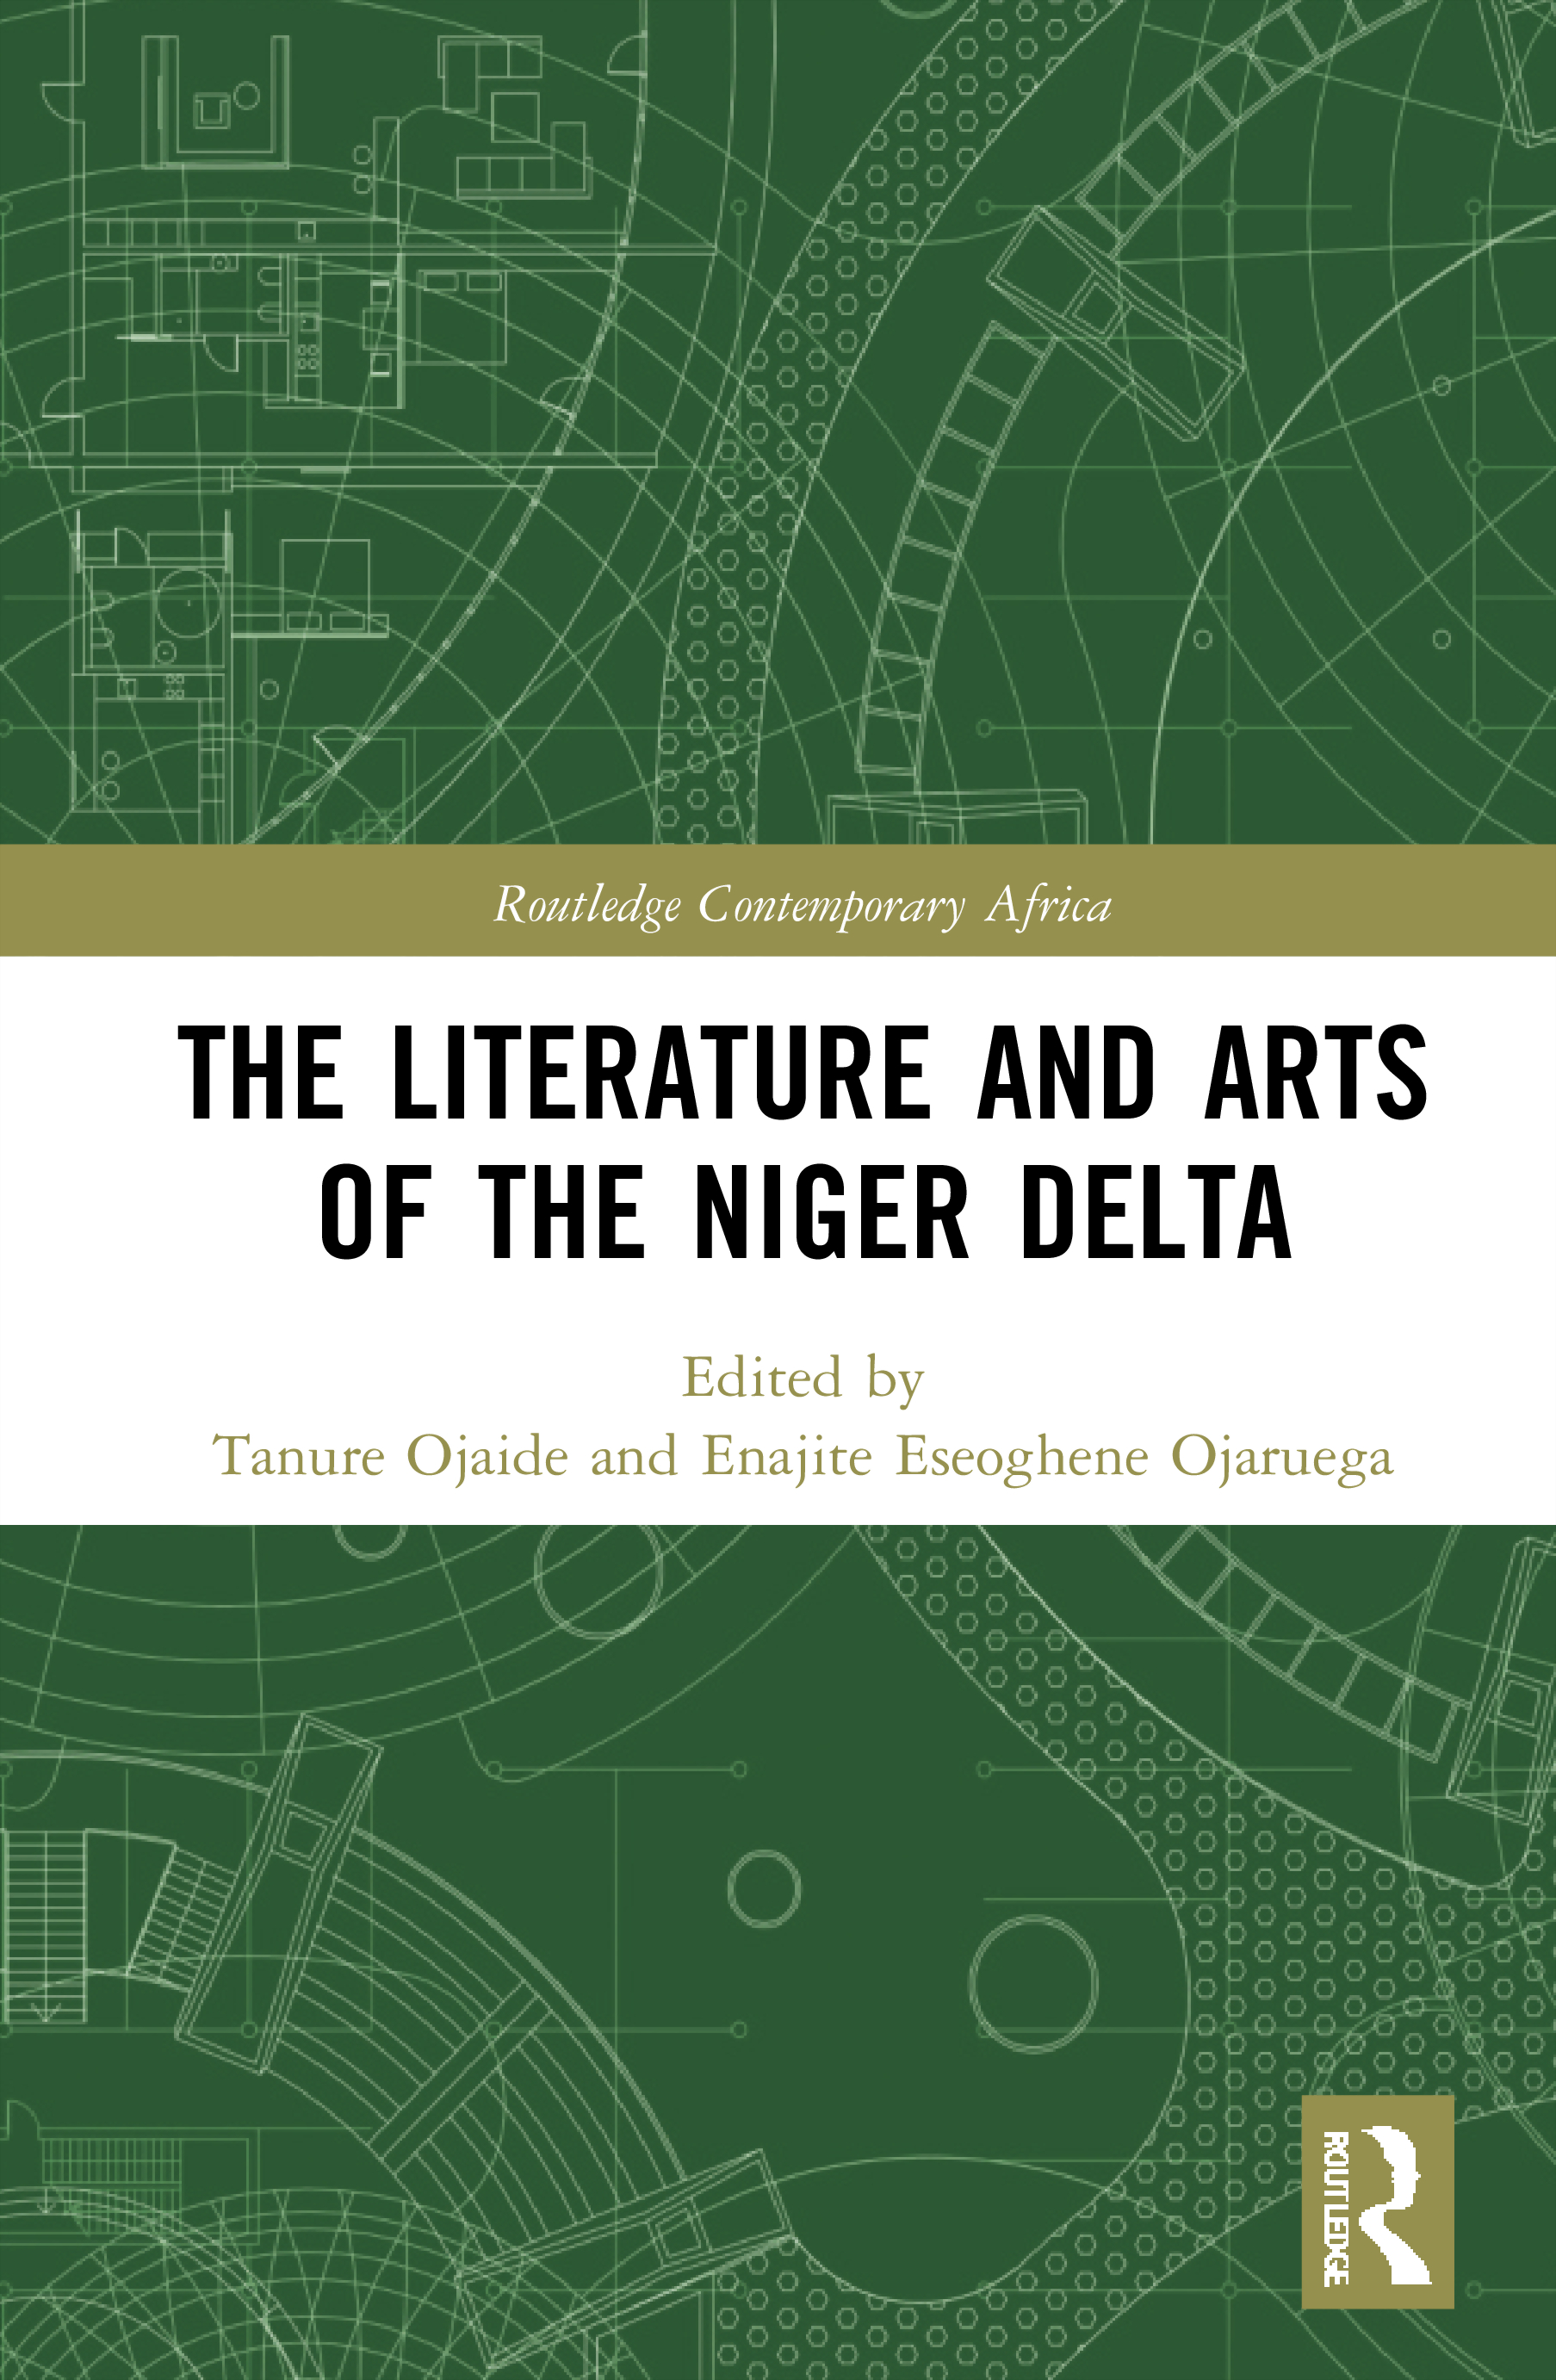 Nature's animism and its appropriation in Niger Delta poetry